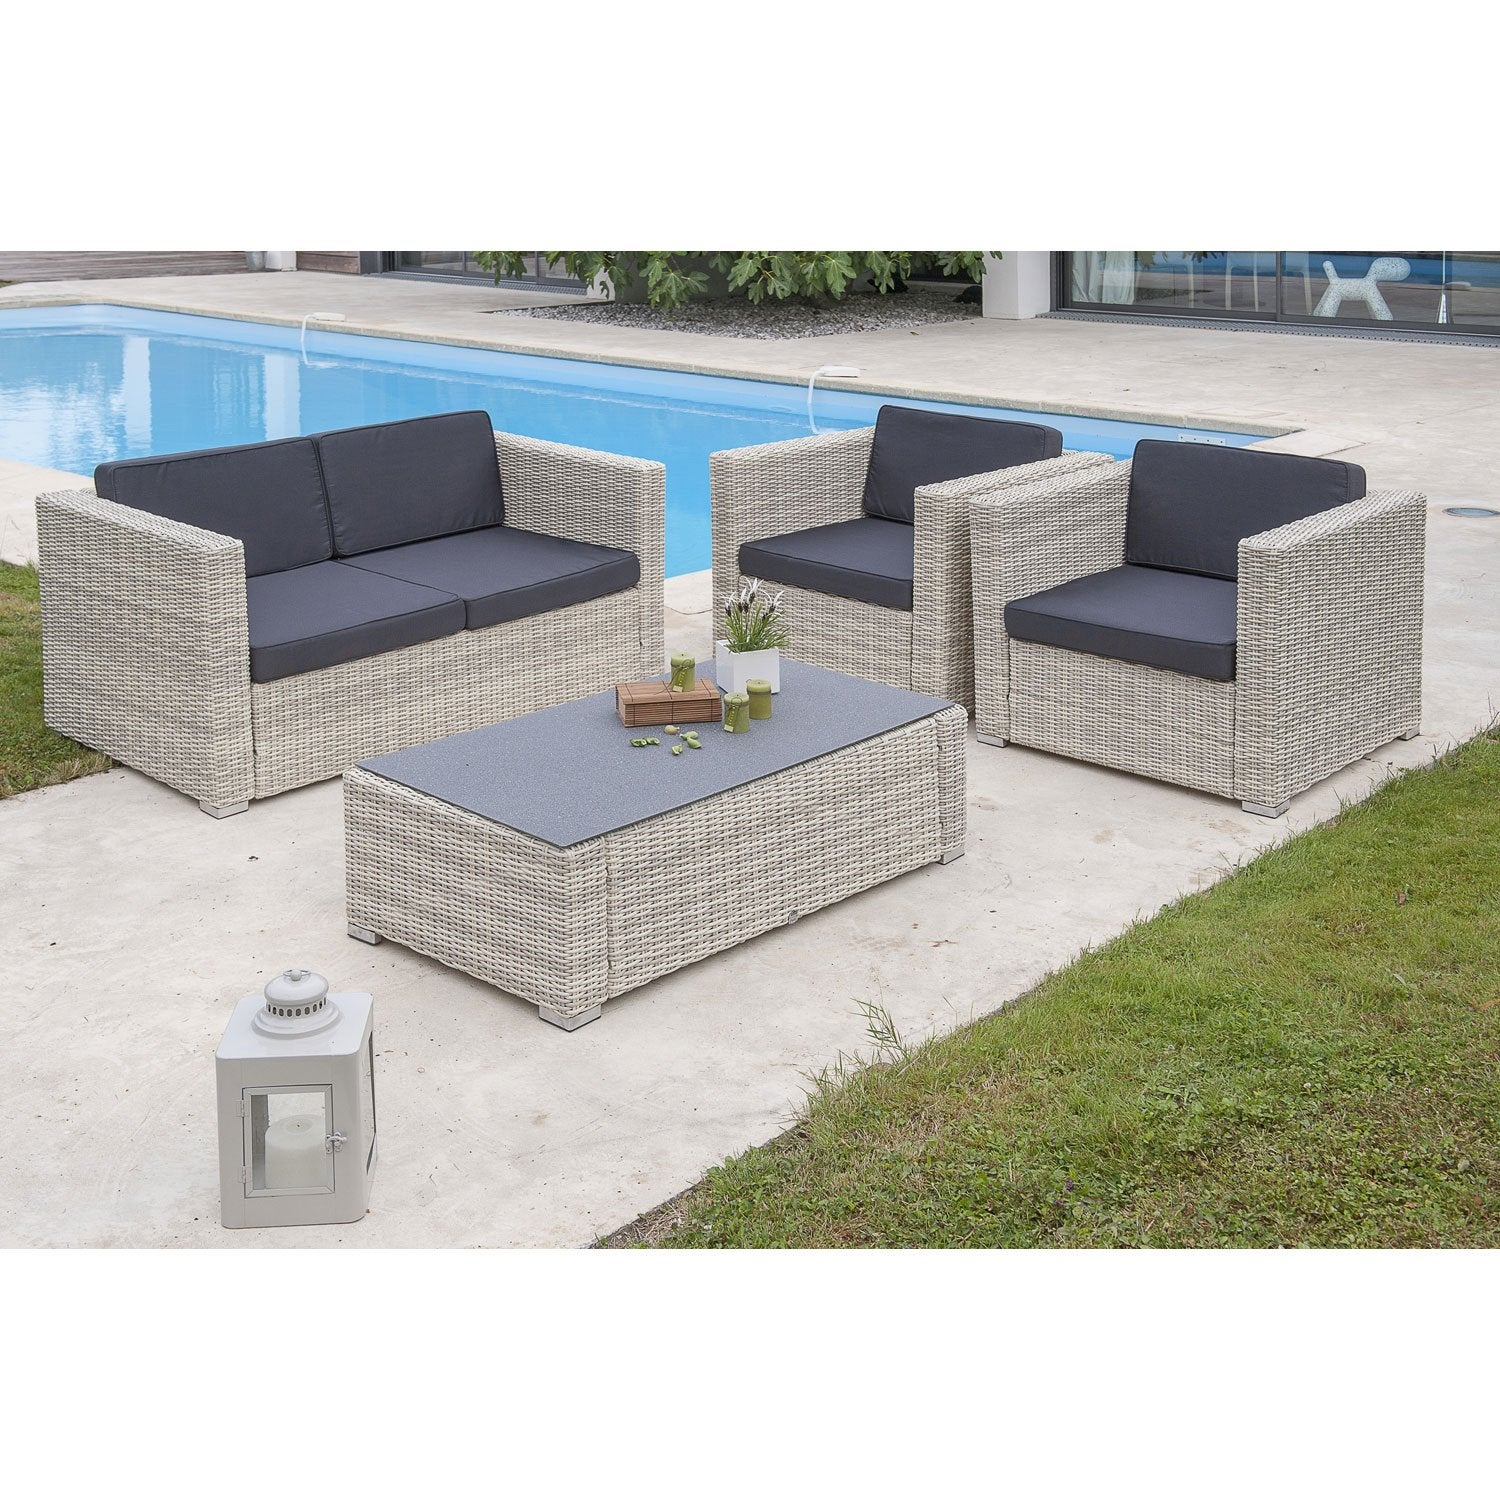 Salon bas de jardin oceane salon r sine tress e blanc for Table de jardin modulable